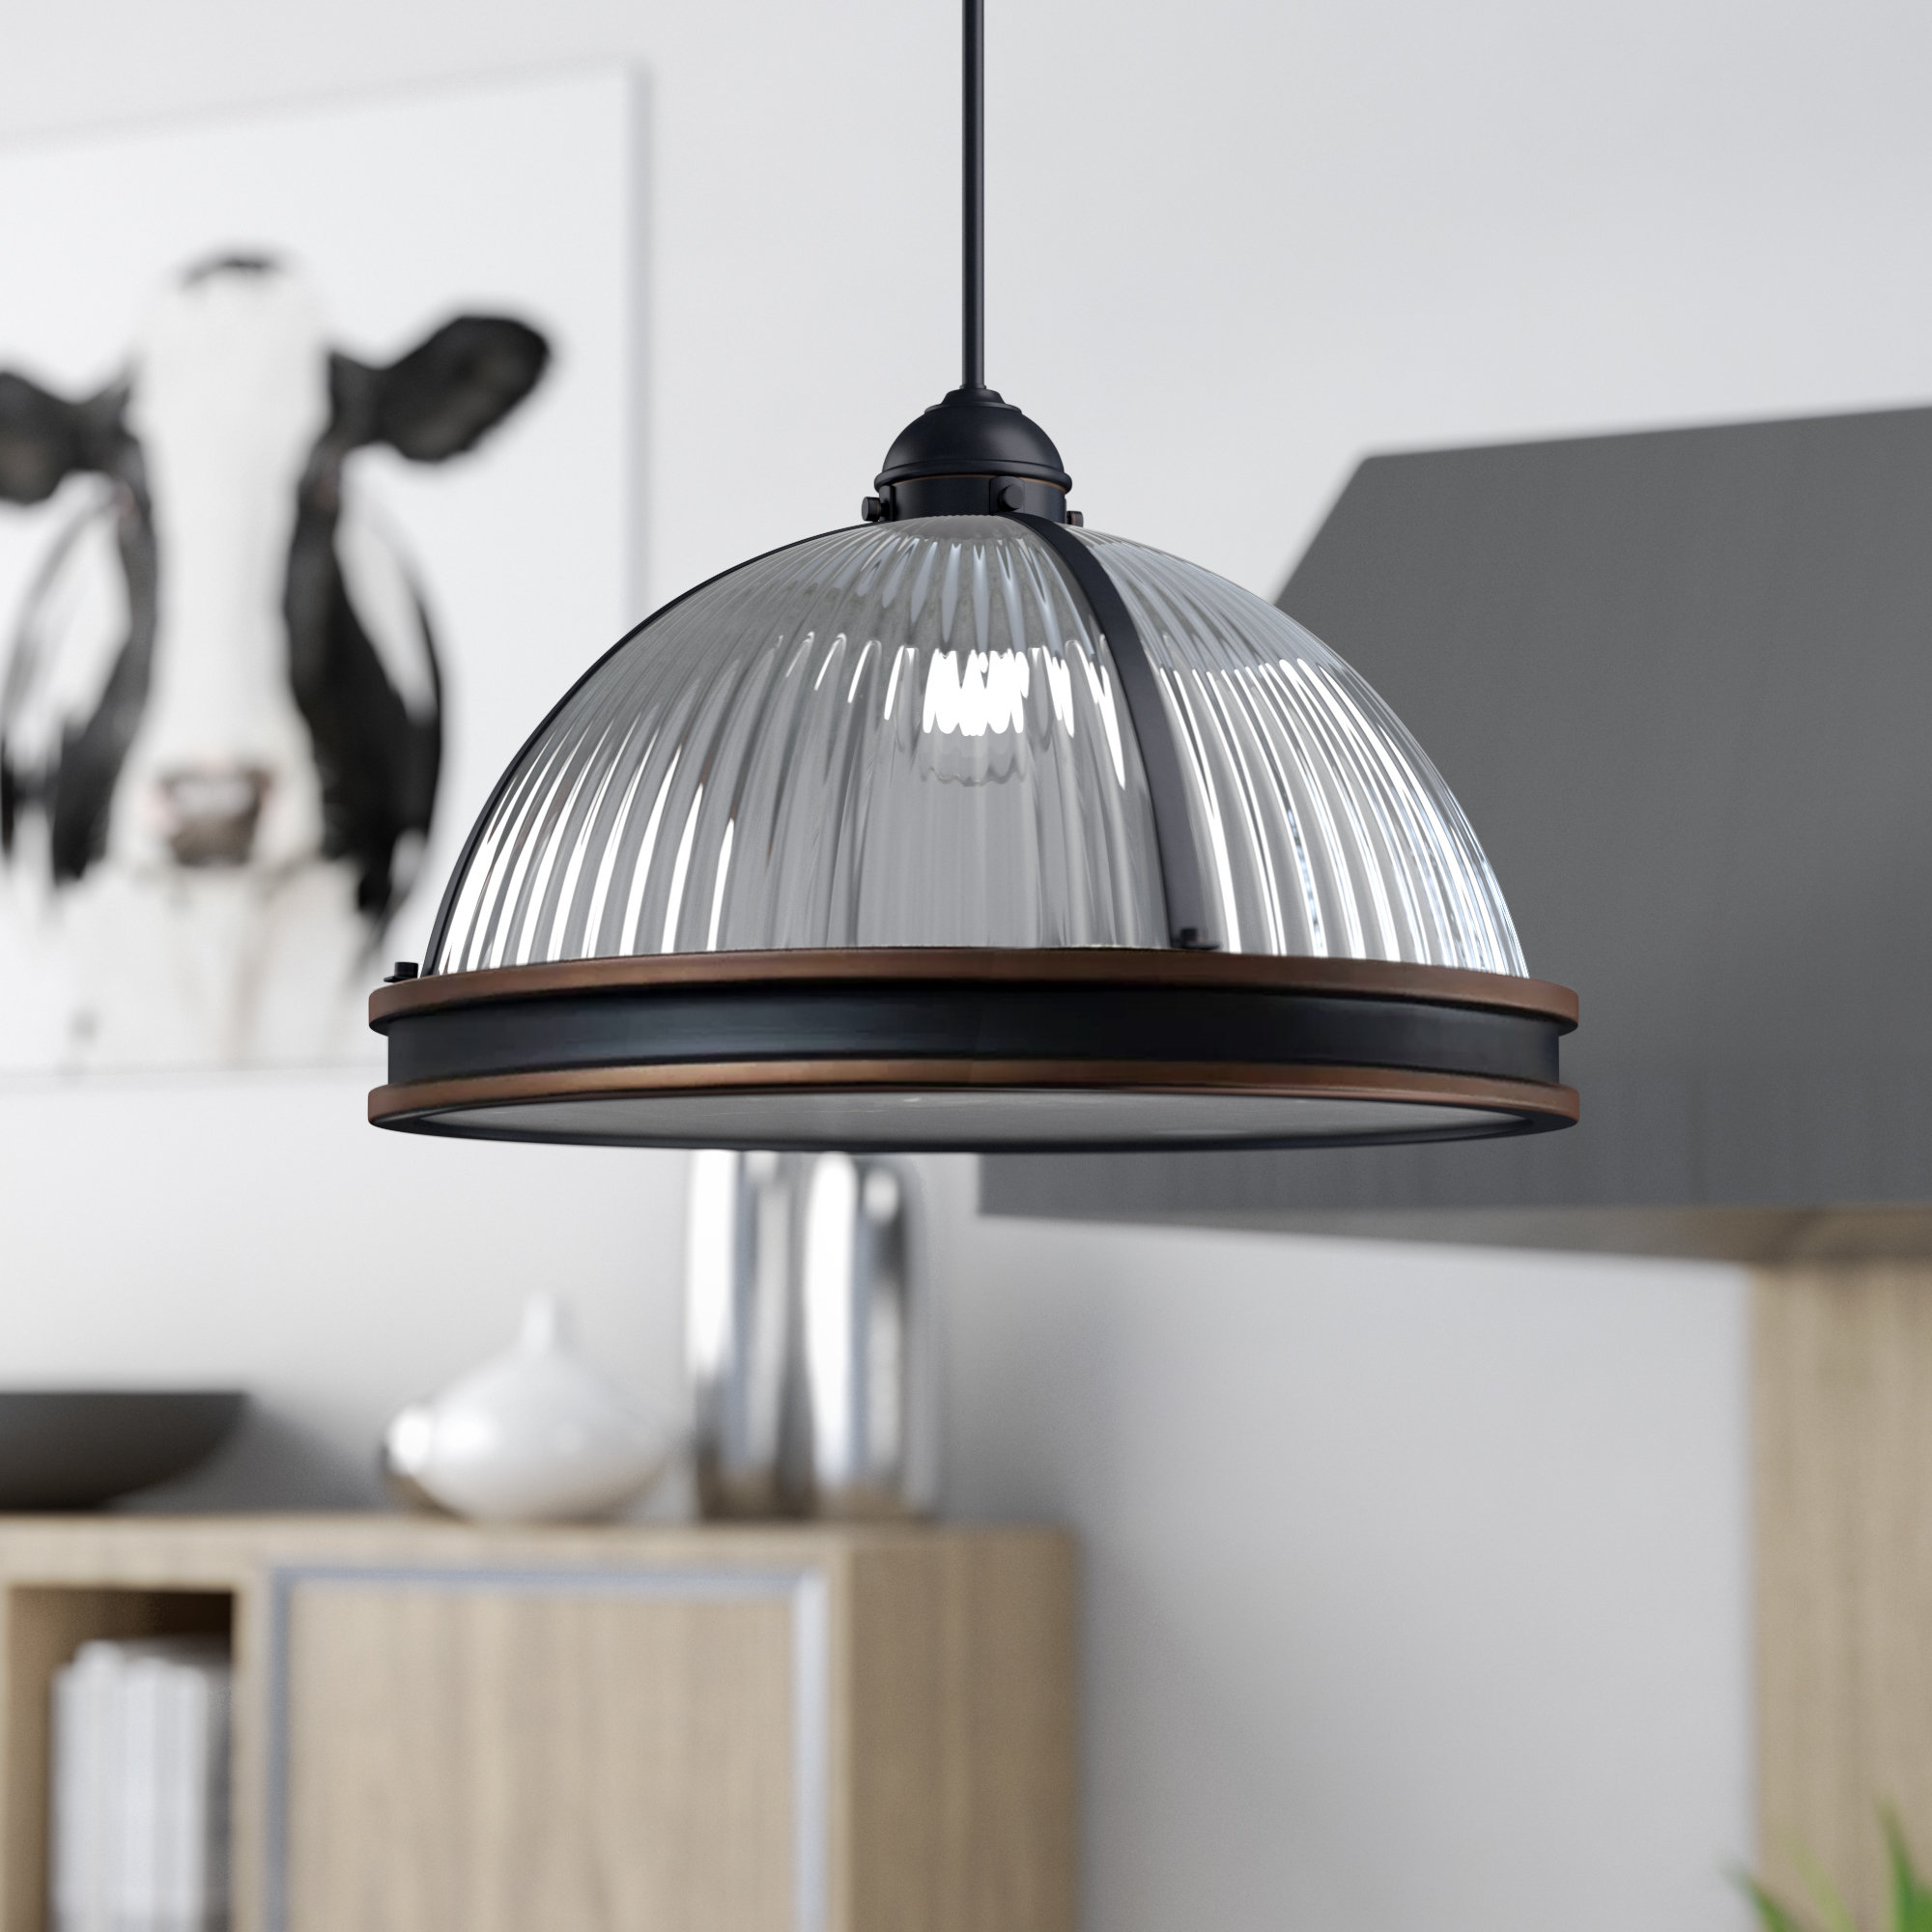 2019 Amara 3 Light Dome Pendants With Palisade 3 Light Dome Pendant (View 1 of 25)